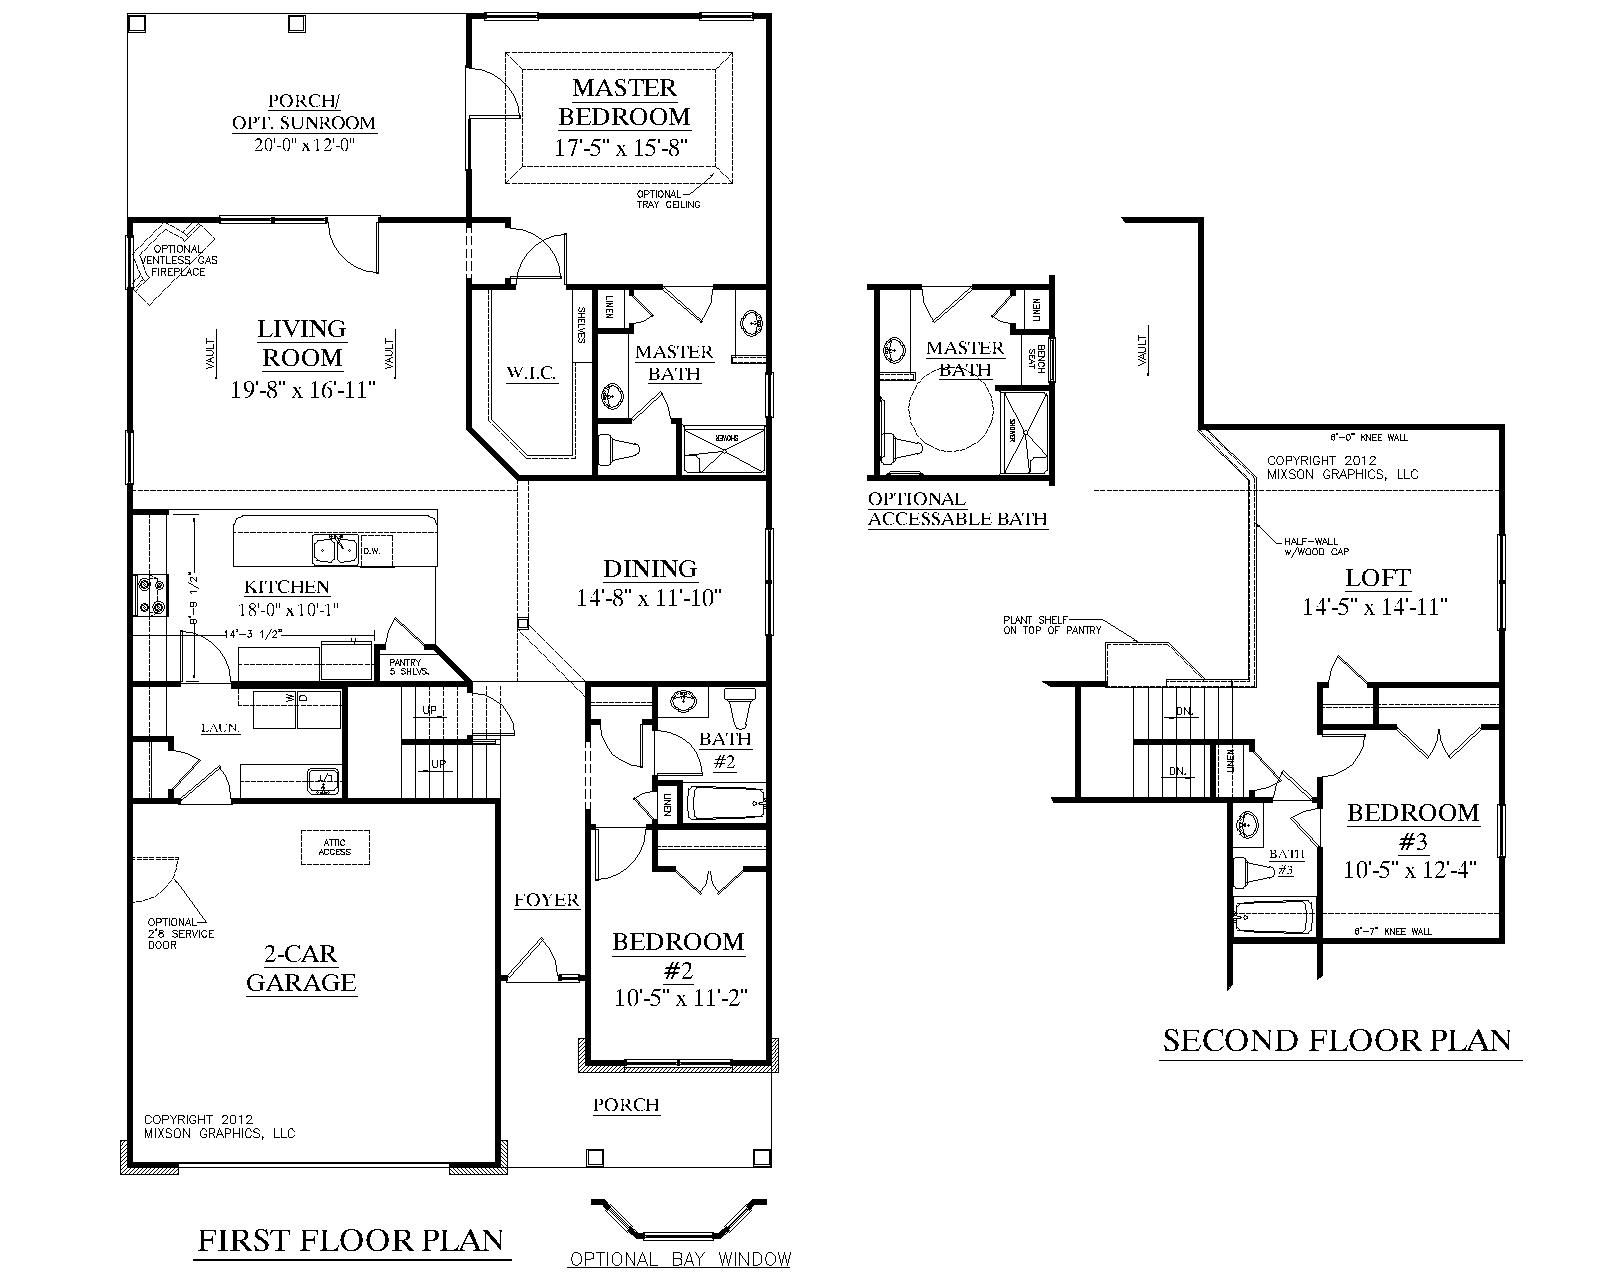 House Plan 2224 Kingstree Floor Plan Traditional 1 1 2 Story House Plan With 3 Bedrooms And 3 Bath House Plan With Loft Unique House Plans Simple House Plans